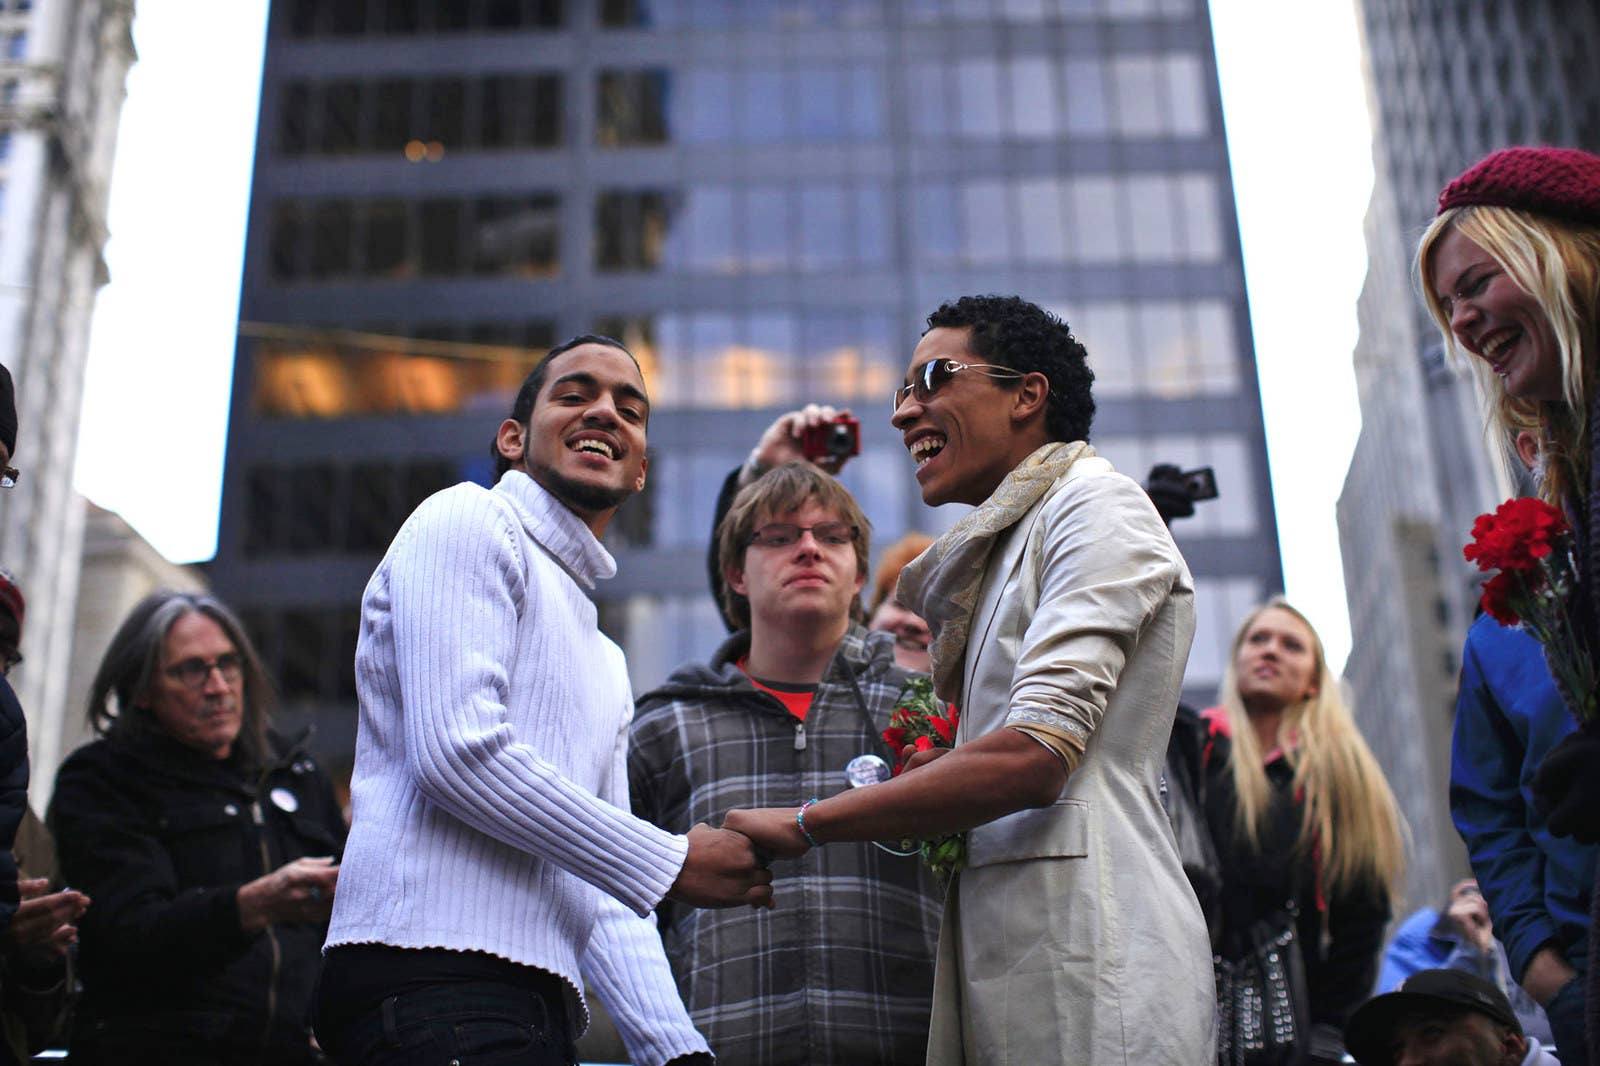 Joseph Allen (center) officiates as fellow protesters Jonathan Lopez (left) and Ivan Cabrera (right) exchange vows during their wedding ceremony at Zuccotti Park on Nov. 19, 2011.